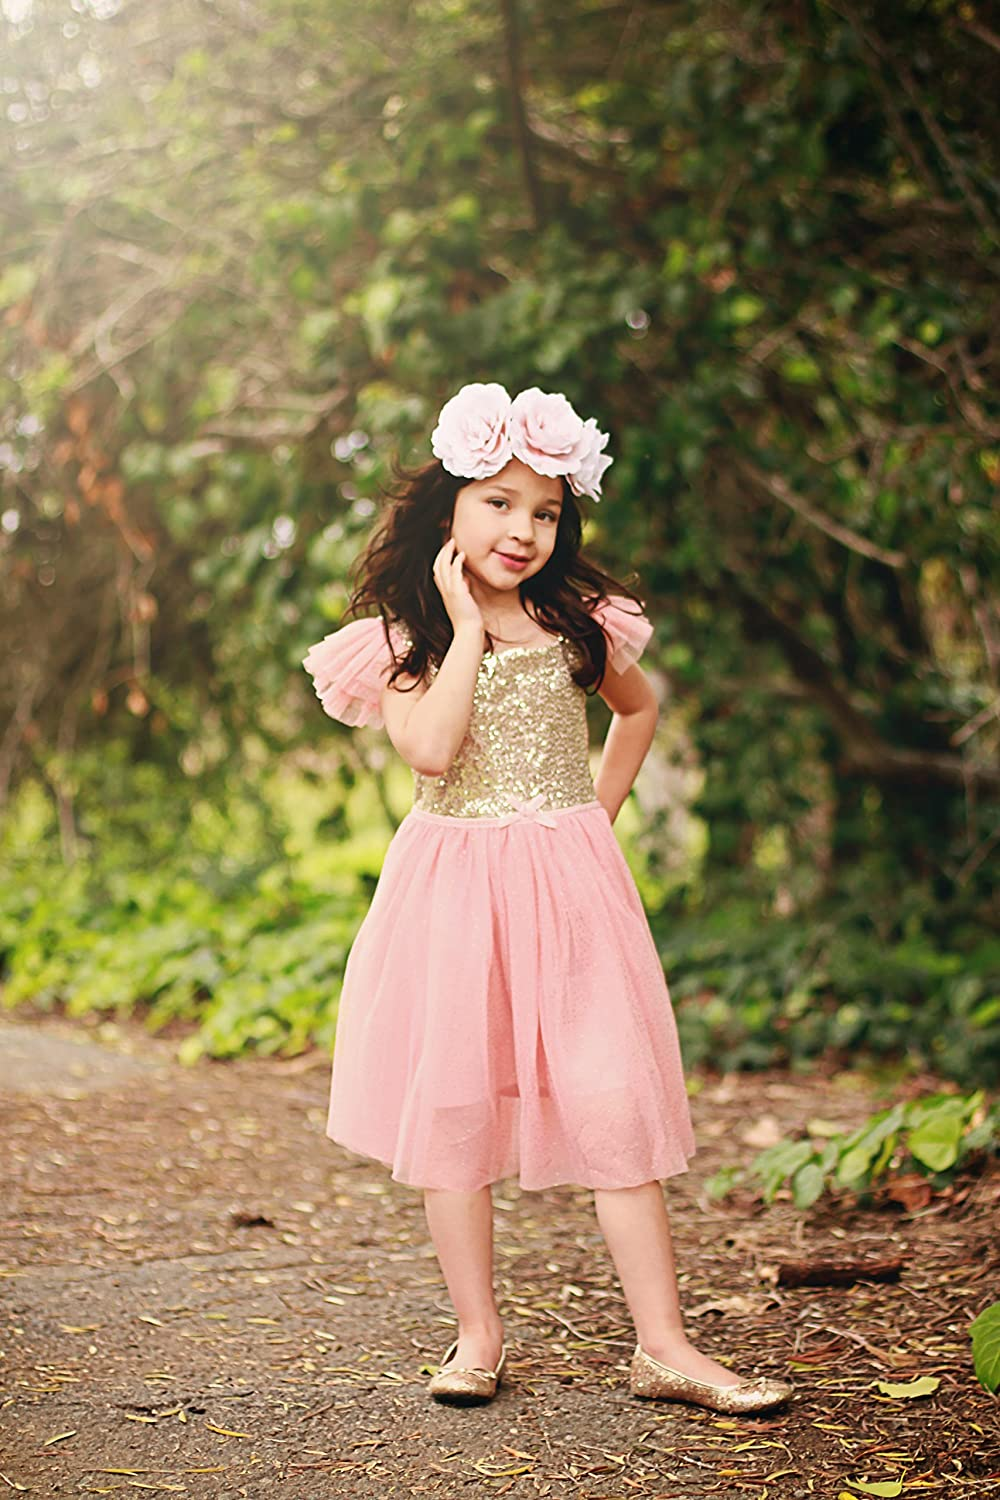 Amazon.com: Birthday Dress for Little Girls Princess Ballerina ...